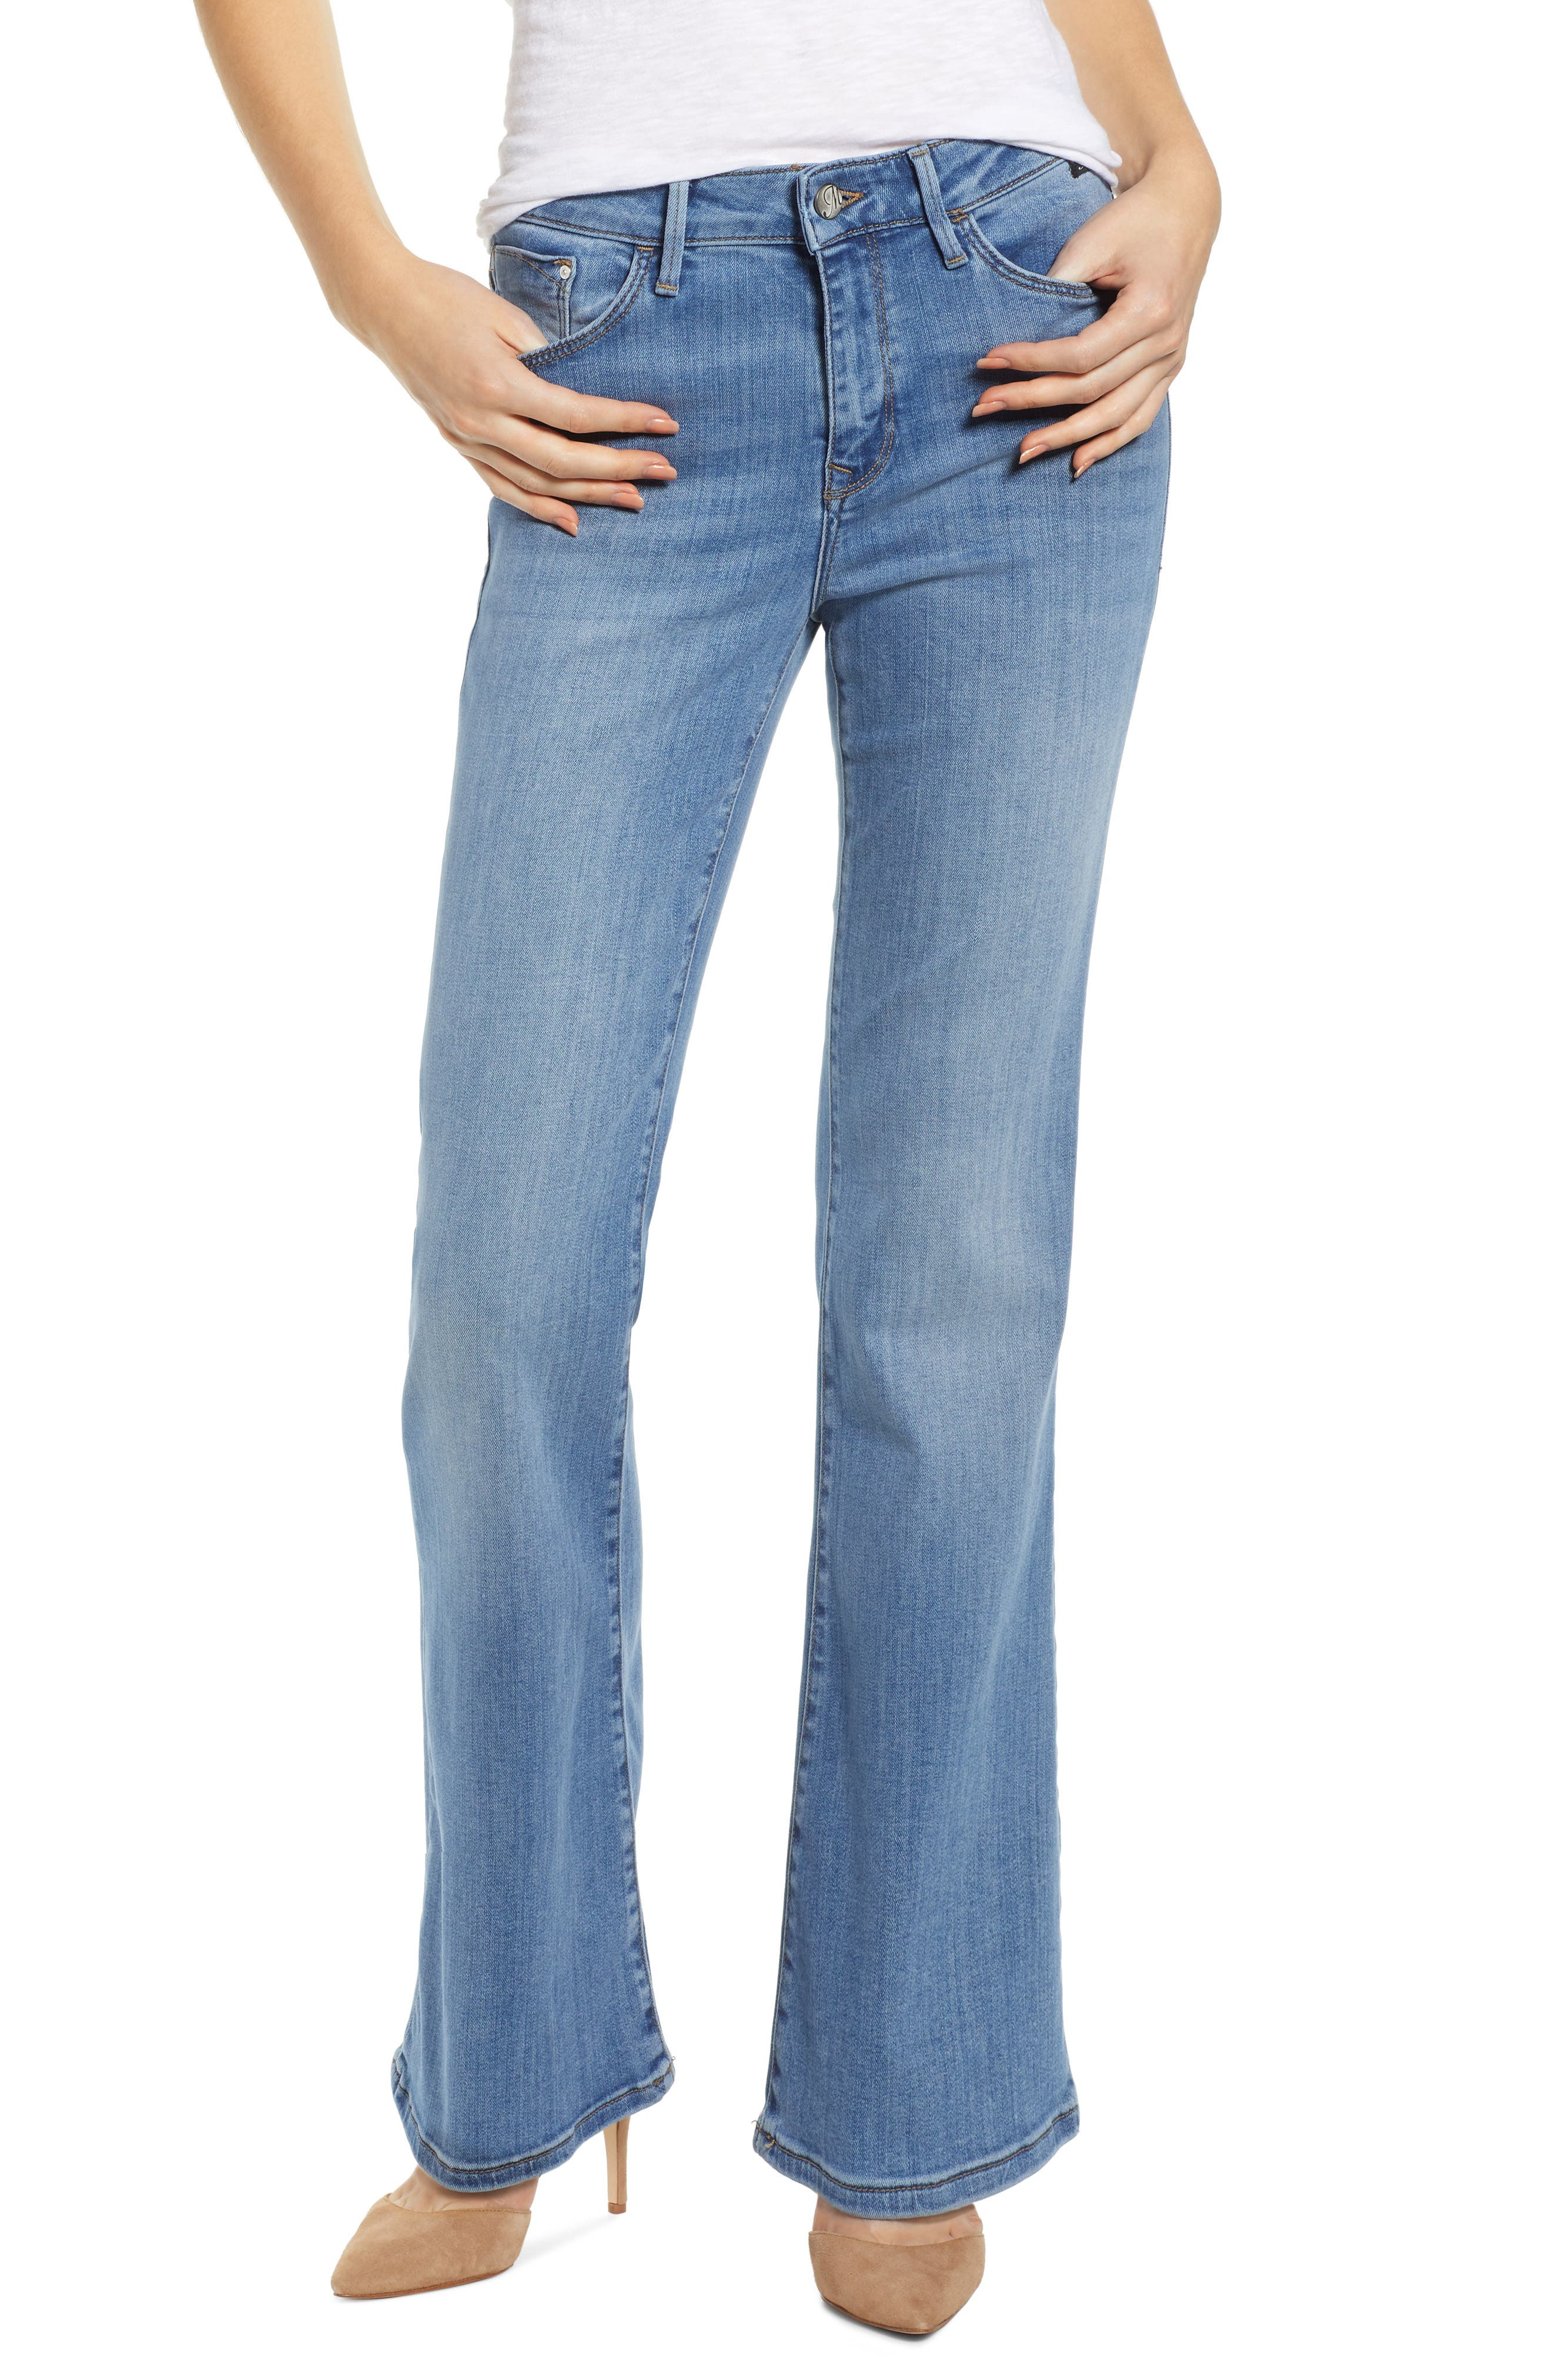 Jeans in a leg-lengthening cut that\\\'s a flashback to the \\\'70s feel fantastic in ultrasoft denim with just the right amount of stretch. Style Name: Mavi Jeans Sydney Brushed Flared Leg Jeans. Style Number: 5827930. Available in stores.